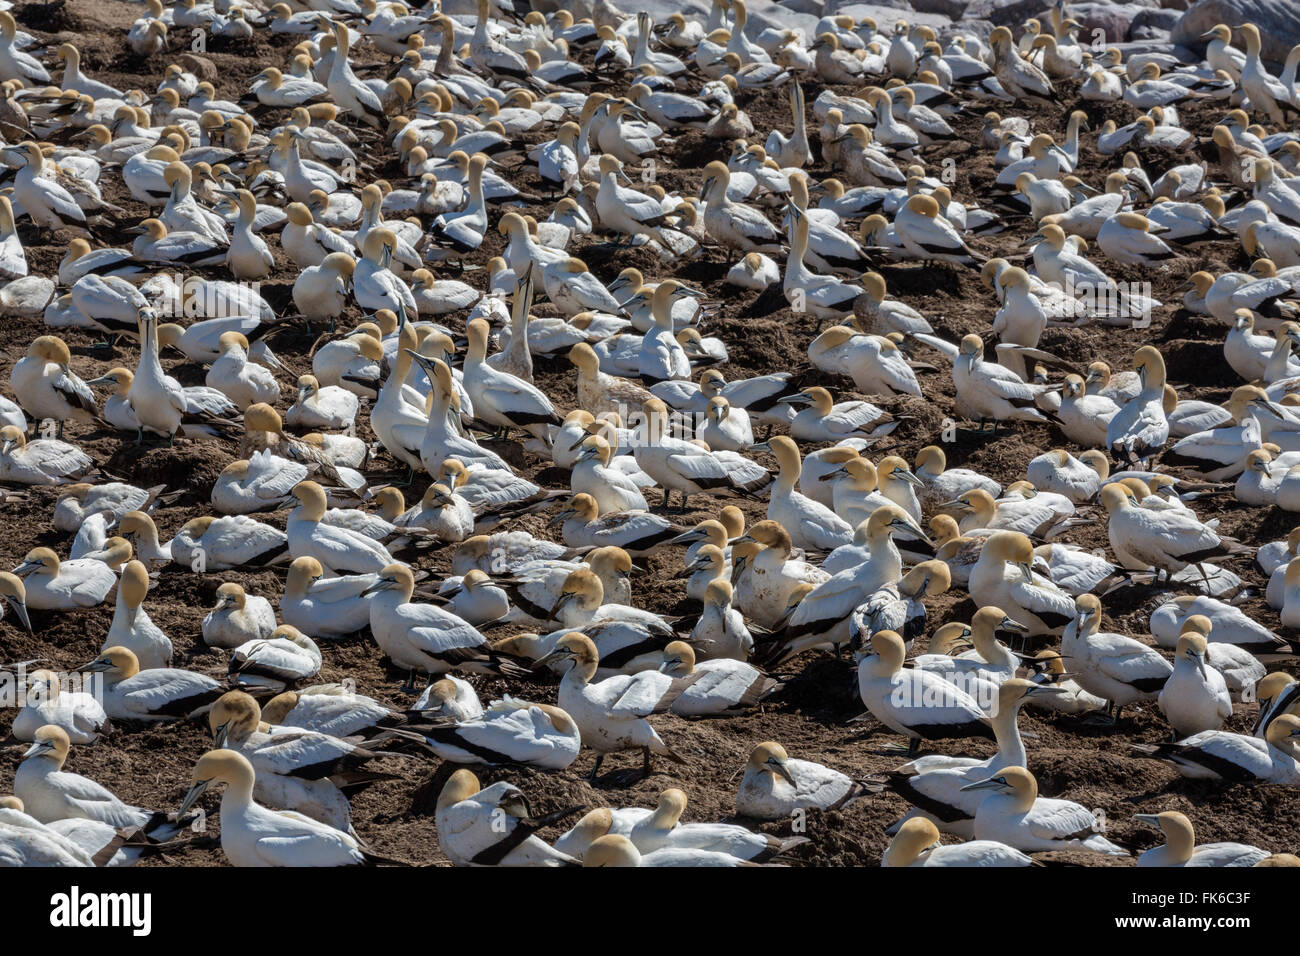 Cape gannet (Morus capensis), breeding colony, Lambert's Bay, South Africa, Africa - Stock Image